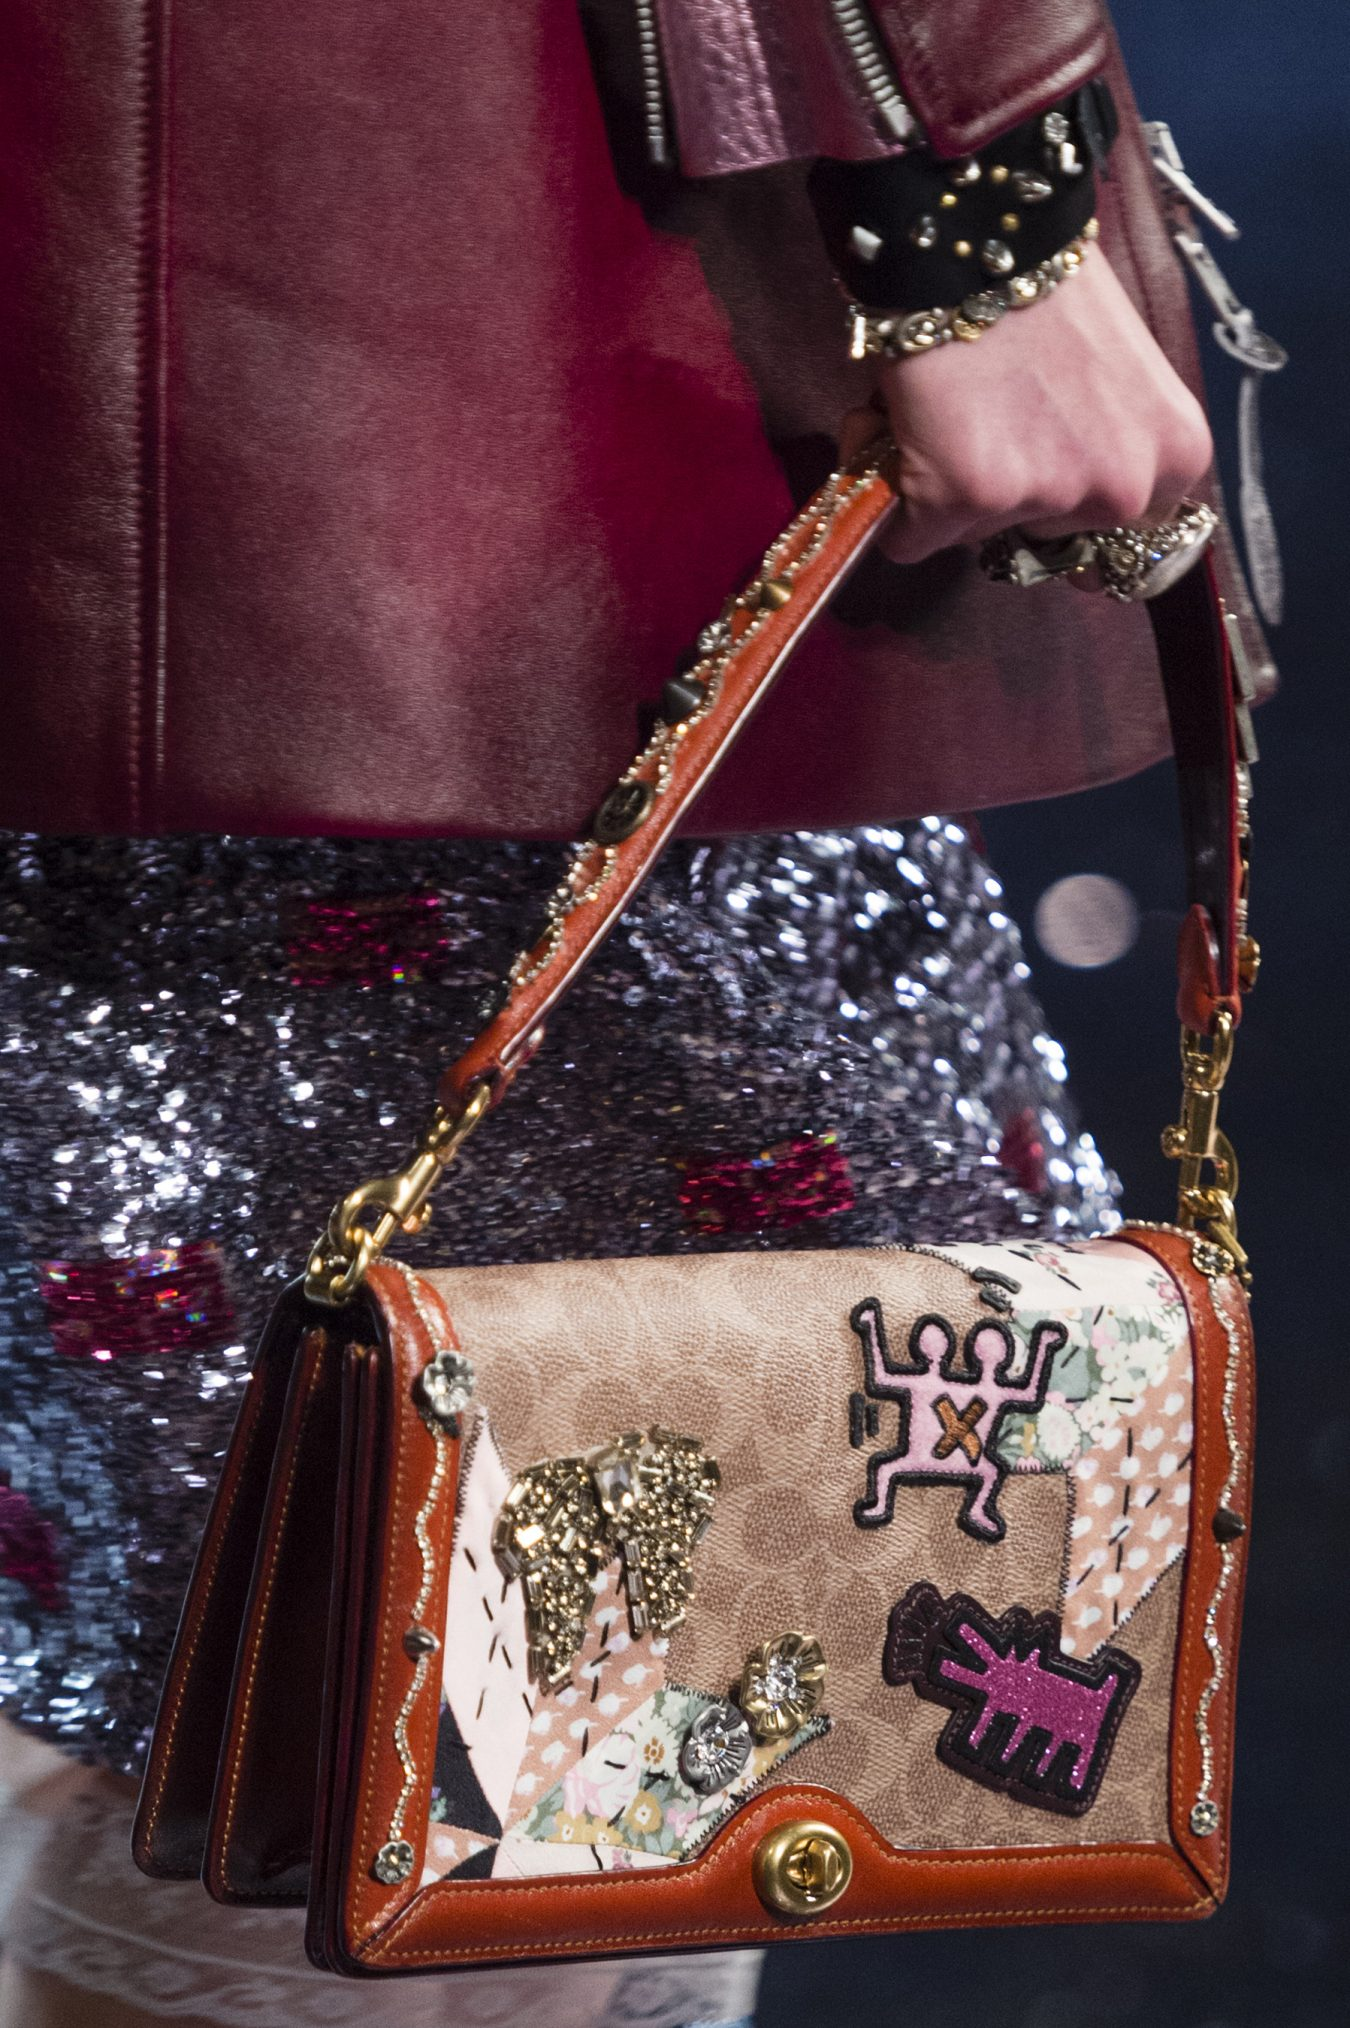 Coach 1941 S Spring 2017 Bags Are A Rockabilly Throwback With. Spring 2018  Runway. Spring 2019 Collection Coach. Coach Purses For Spring 2018 Best  Purse ... 8150d2e6f5